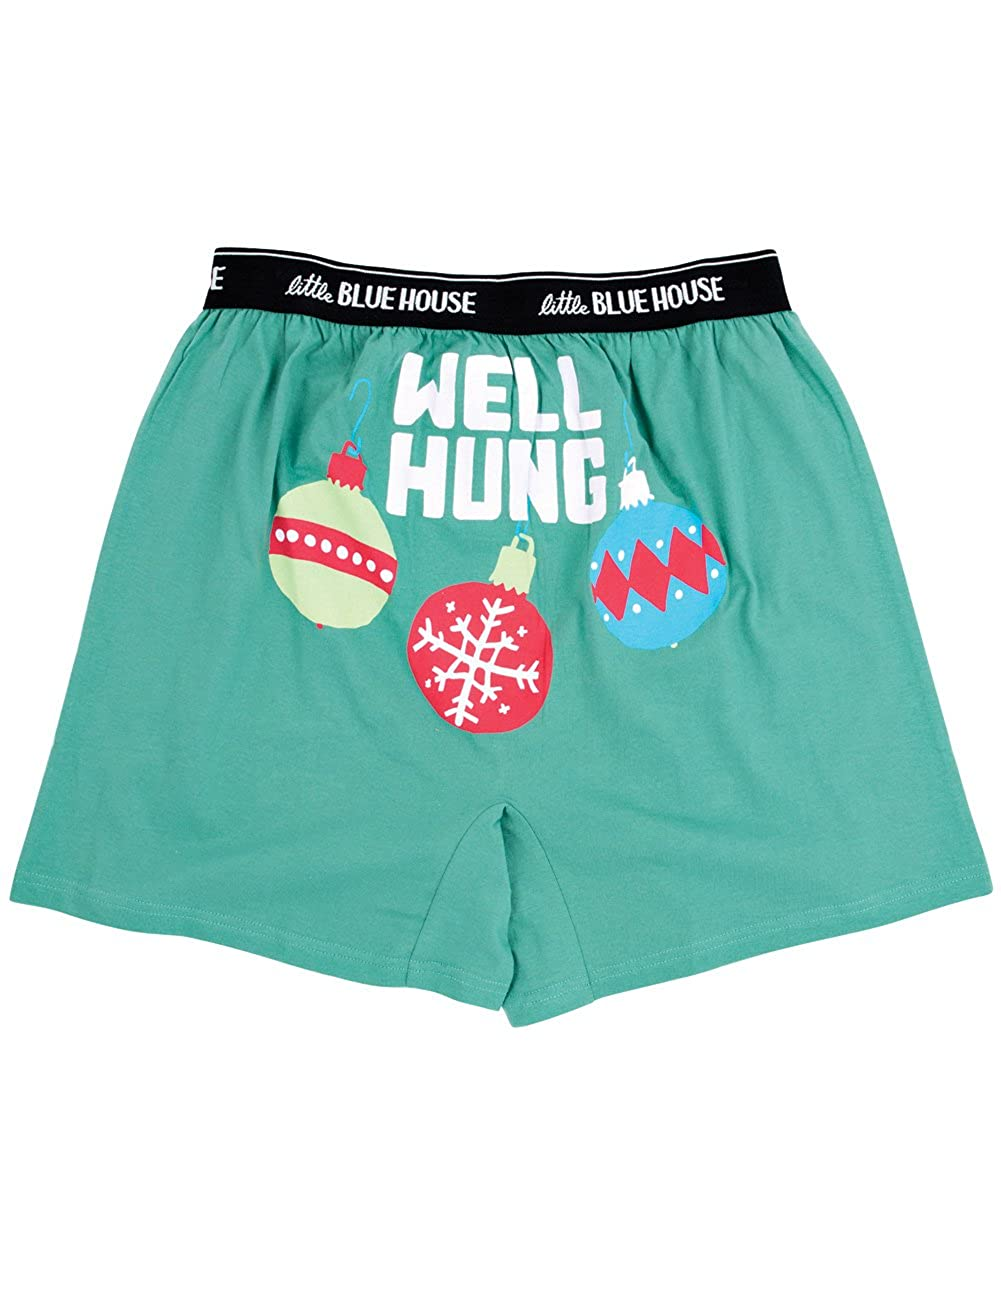 Well Hung Boxers - Humorous Holiday Print On The Rear Johnson Smith Co 19883